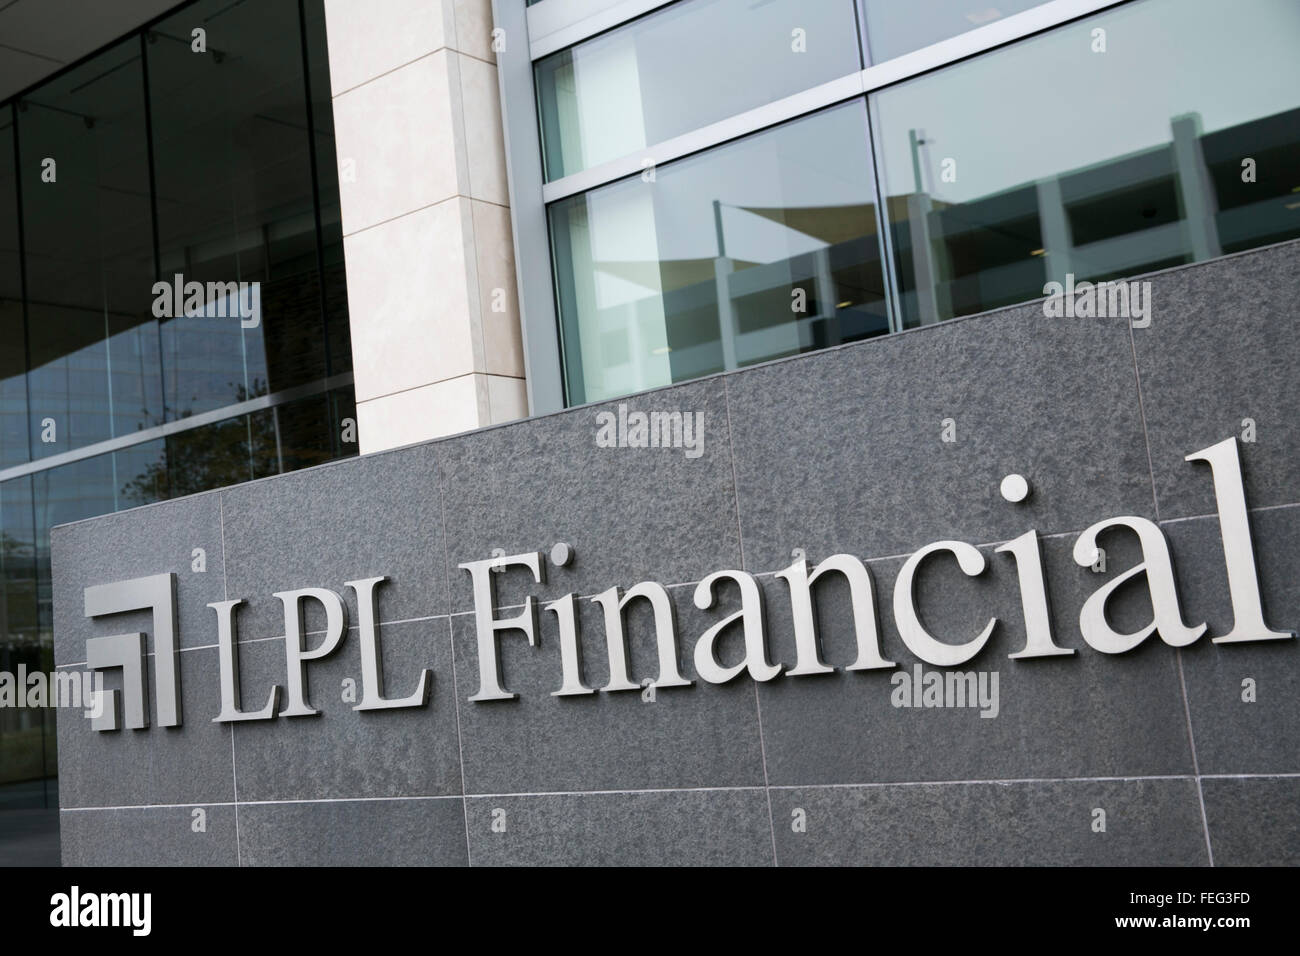 Lpl financial stock options